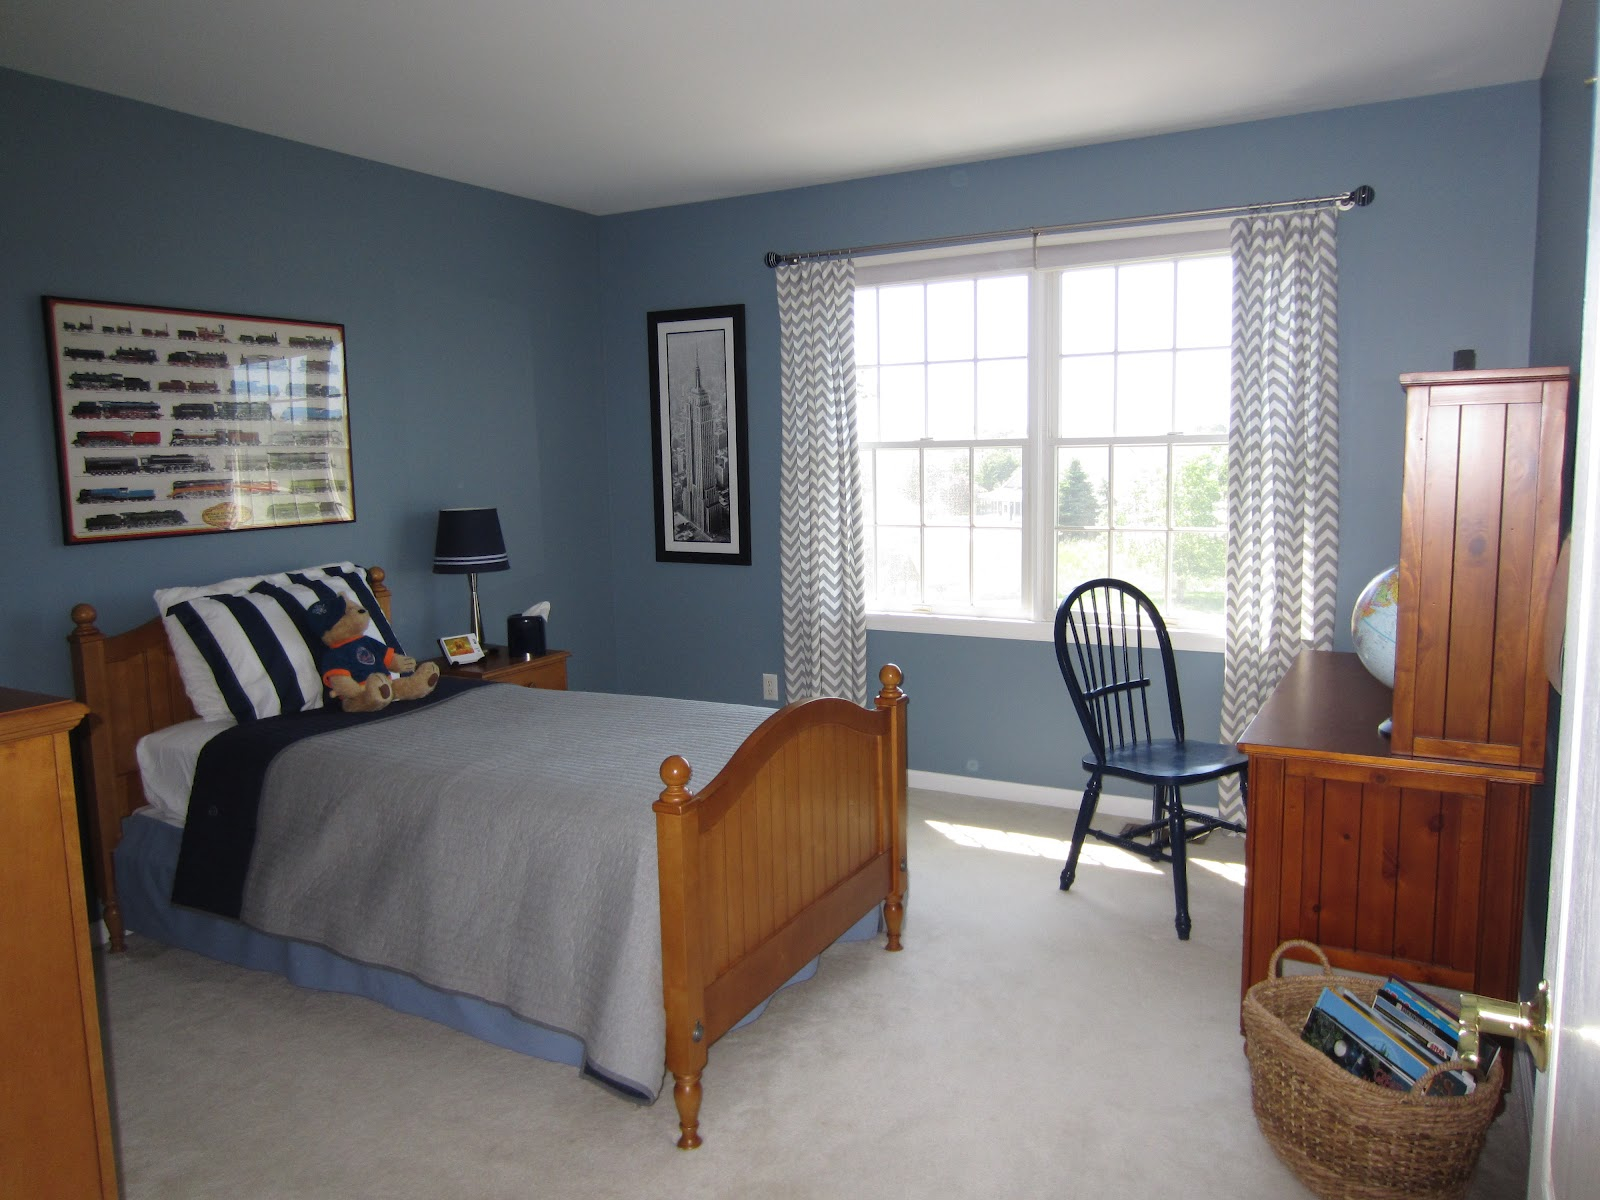 Amazing Boy Bedroom Design Ideas With Light Blue Wall Paint Themes with dimensions 1600 X 1200